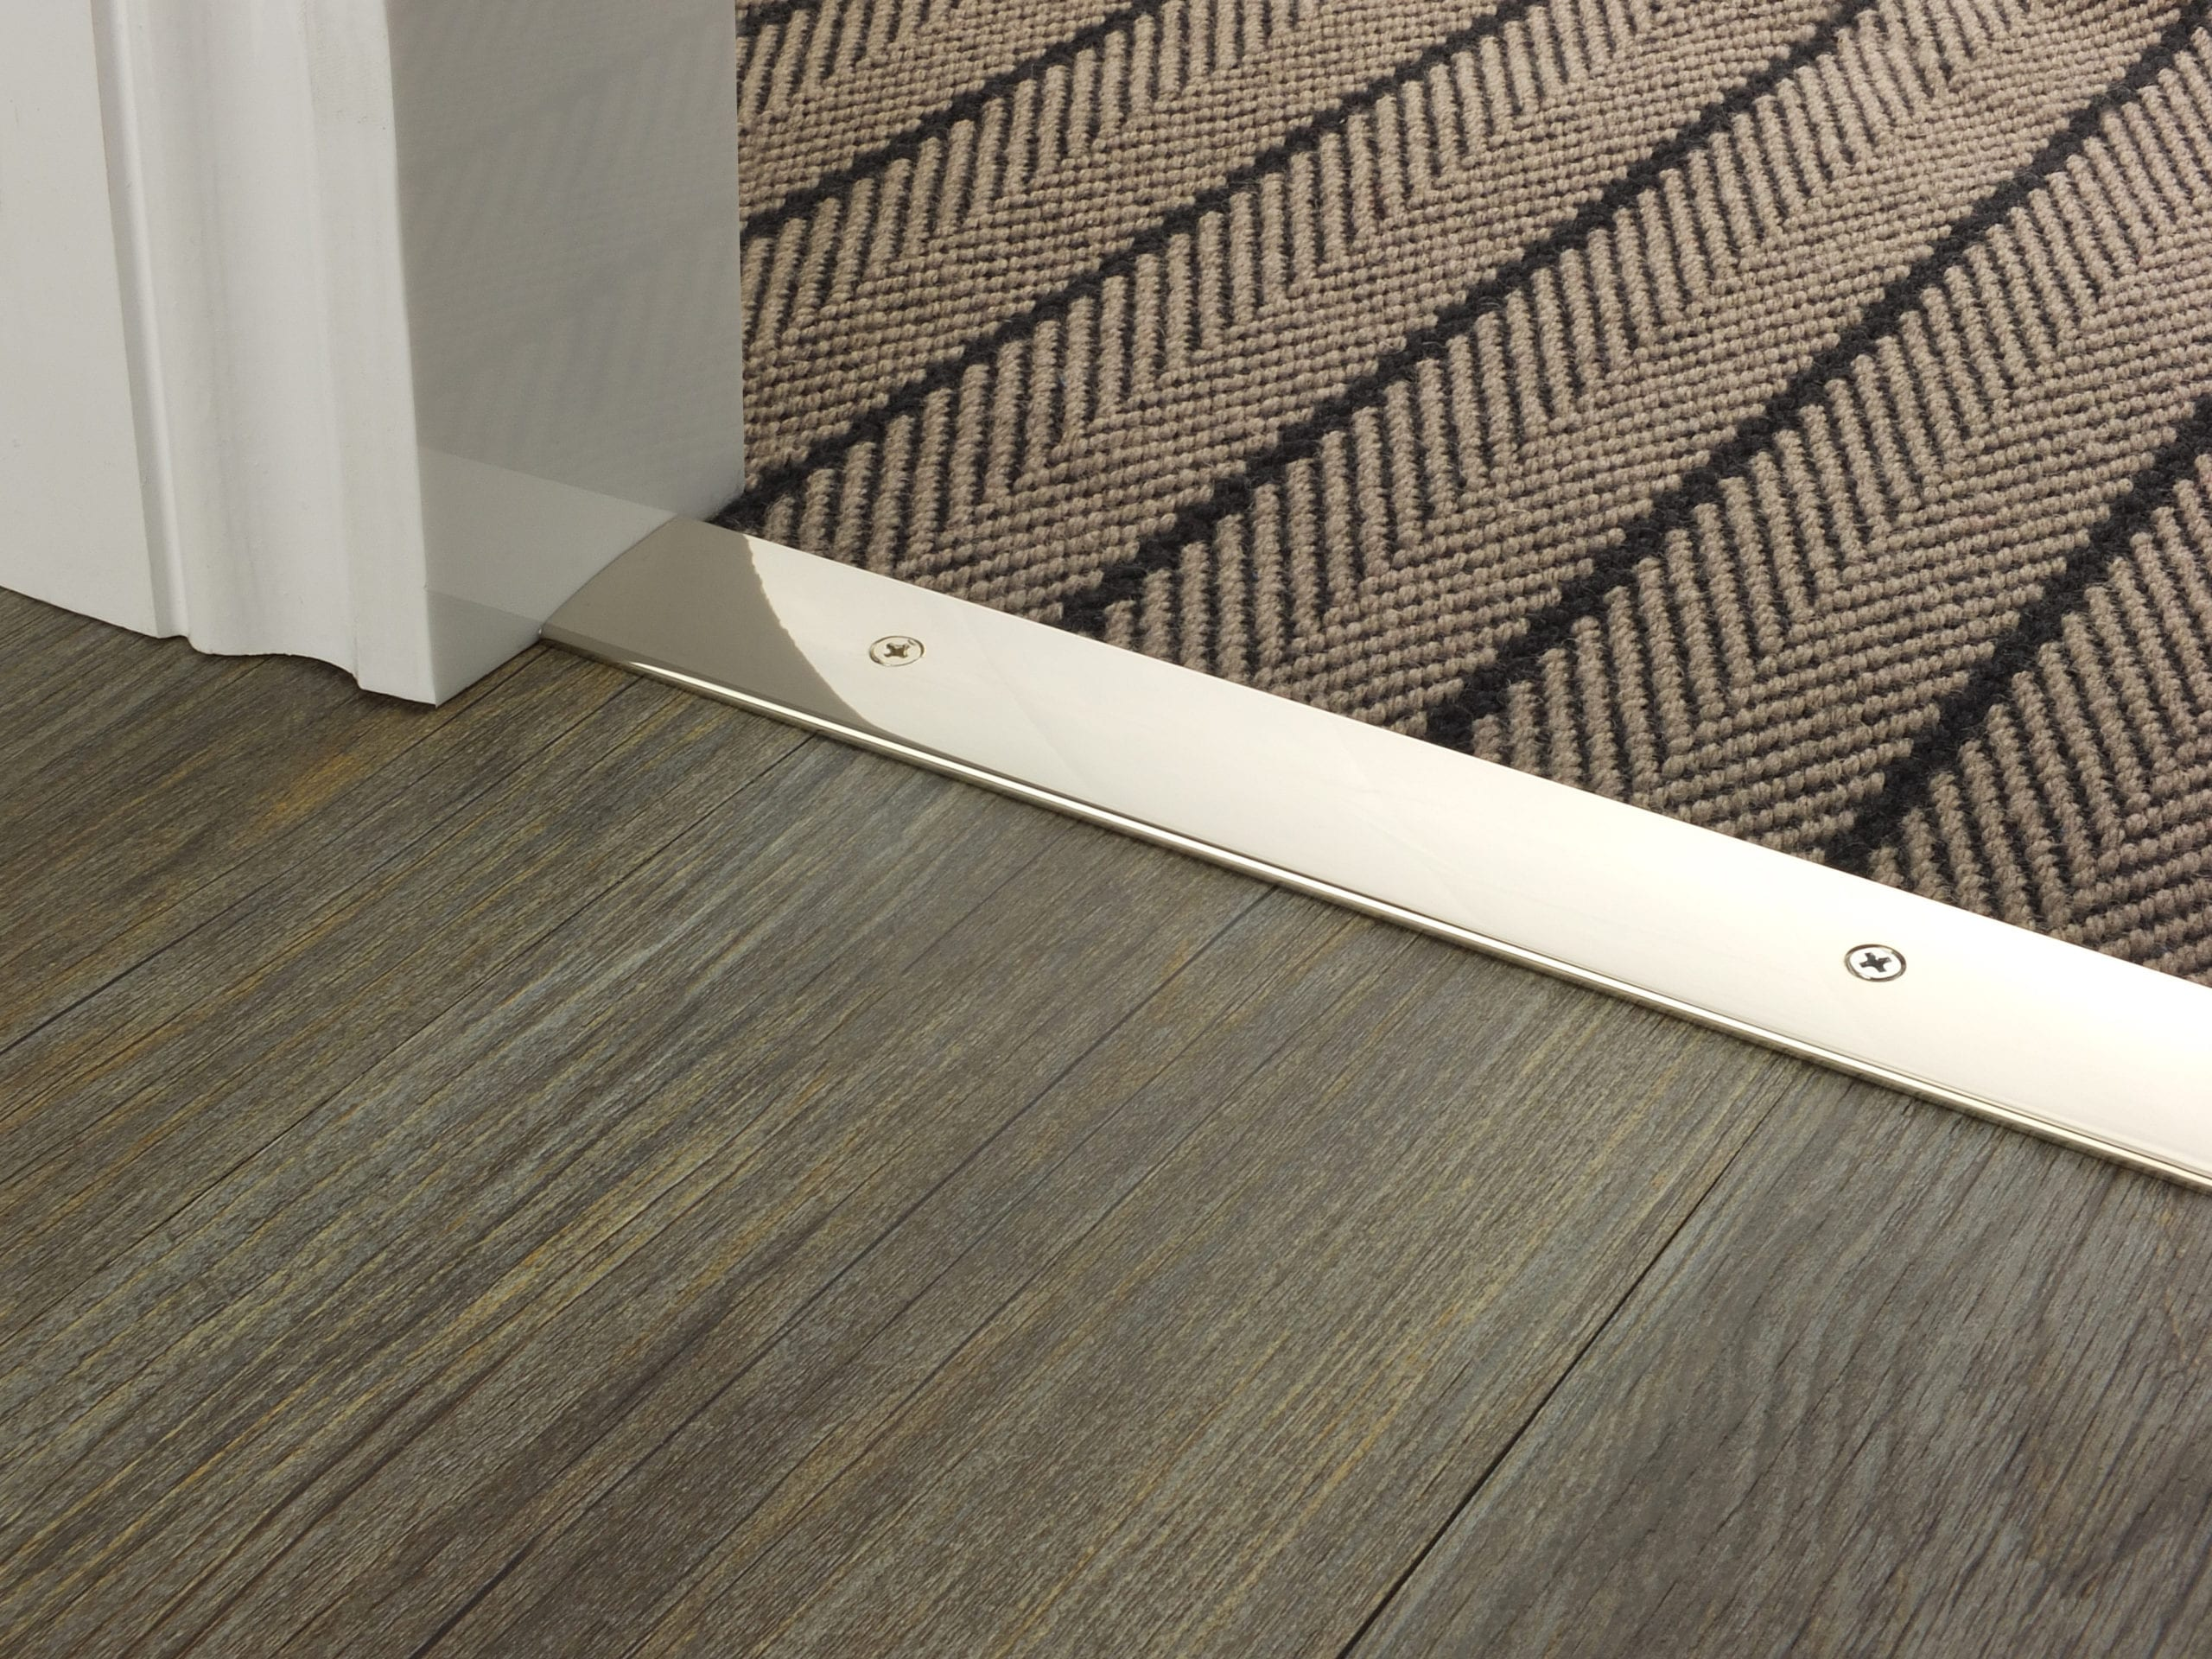 Premier Cover plate 38mm polished nickel with matching screws shown connecting a brown floorcovering to wooden floor